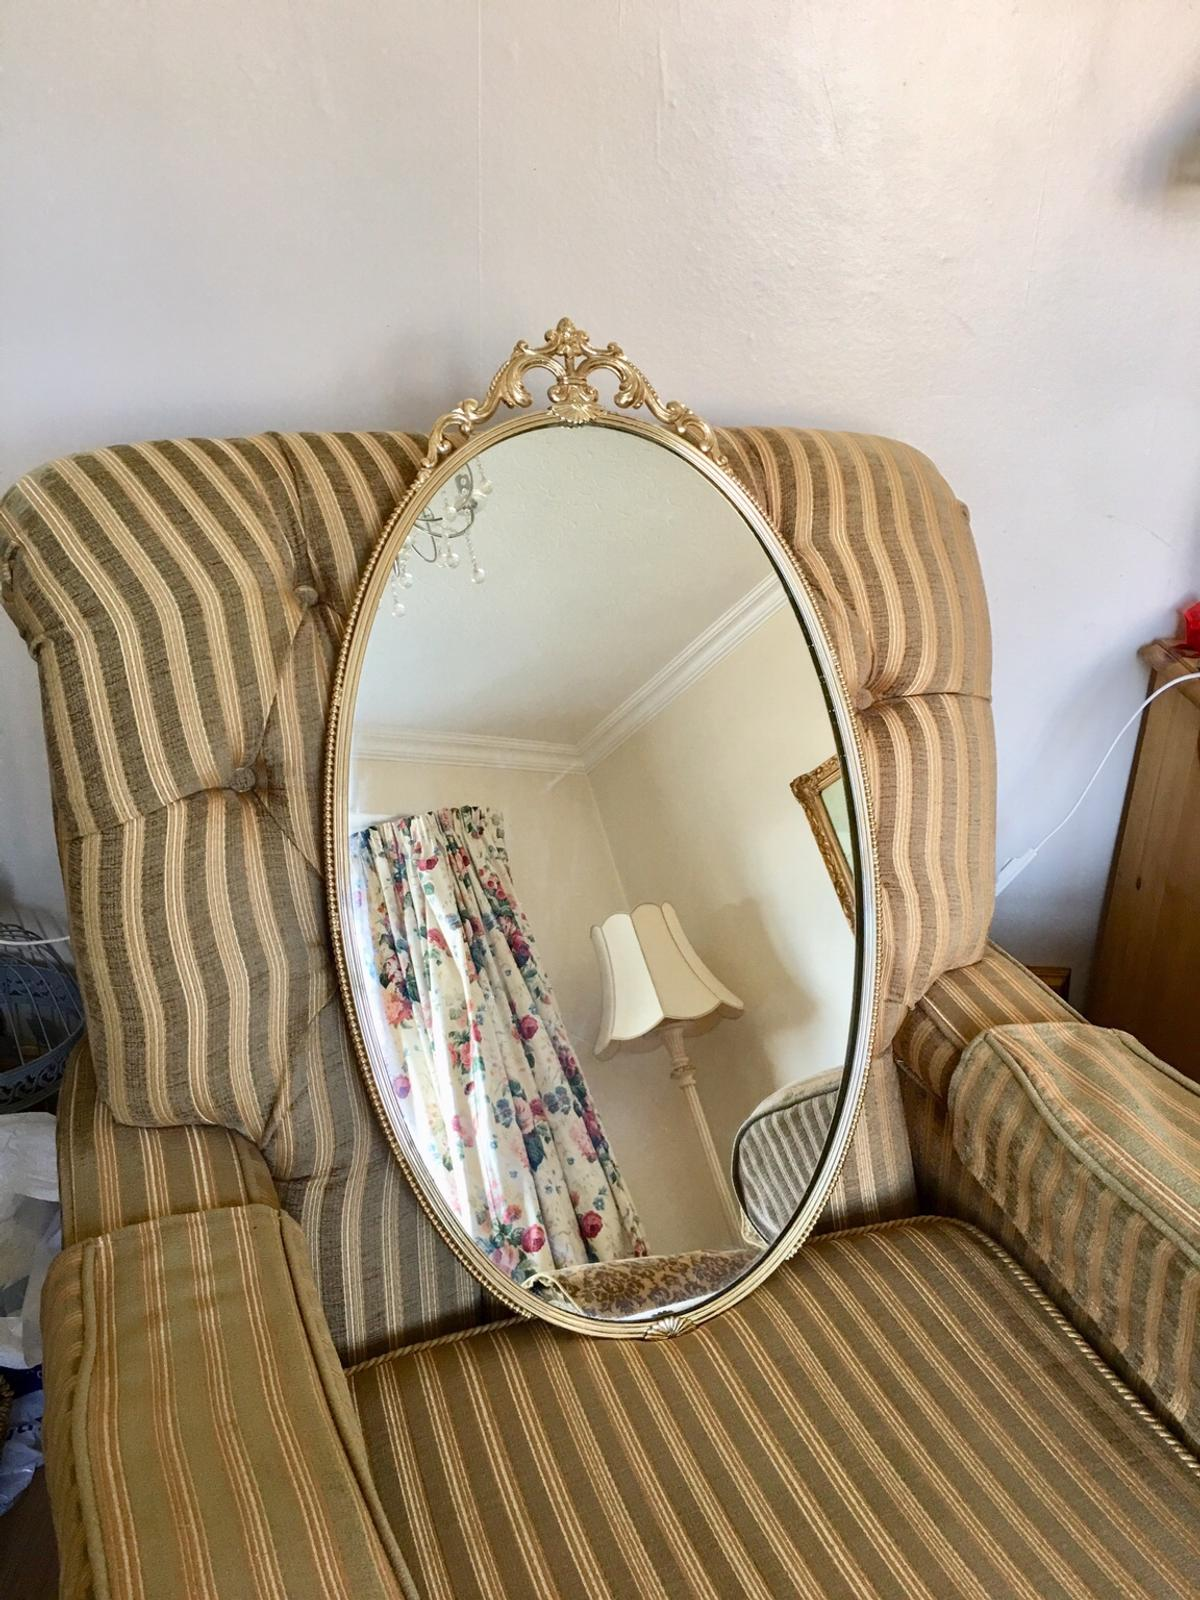 Large Oval Gold Ornate Mirror In La4 Lancaster For 15 00 For Sale Shpock